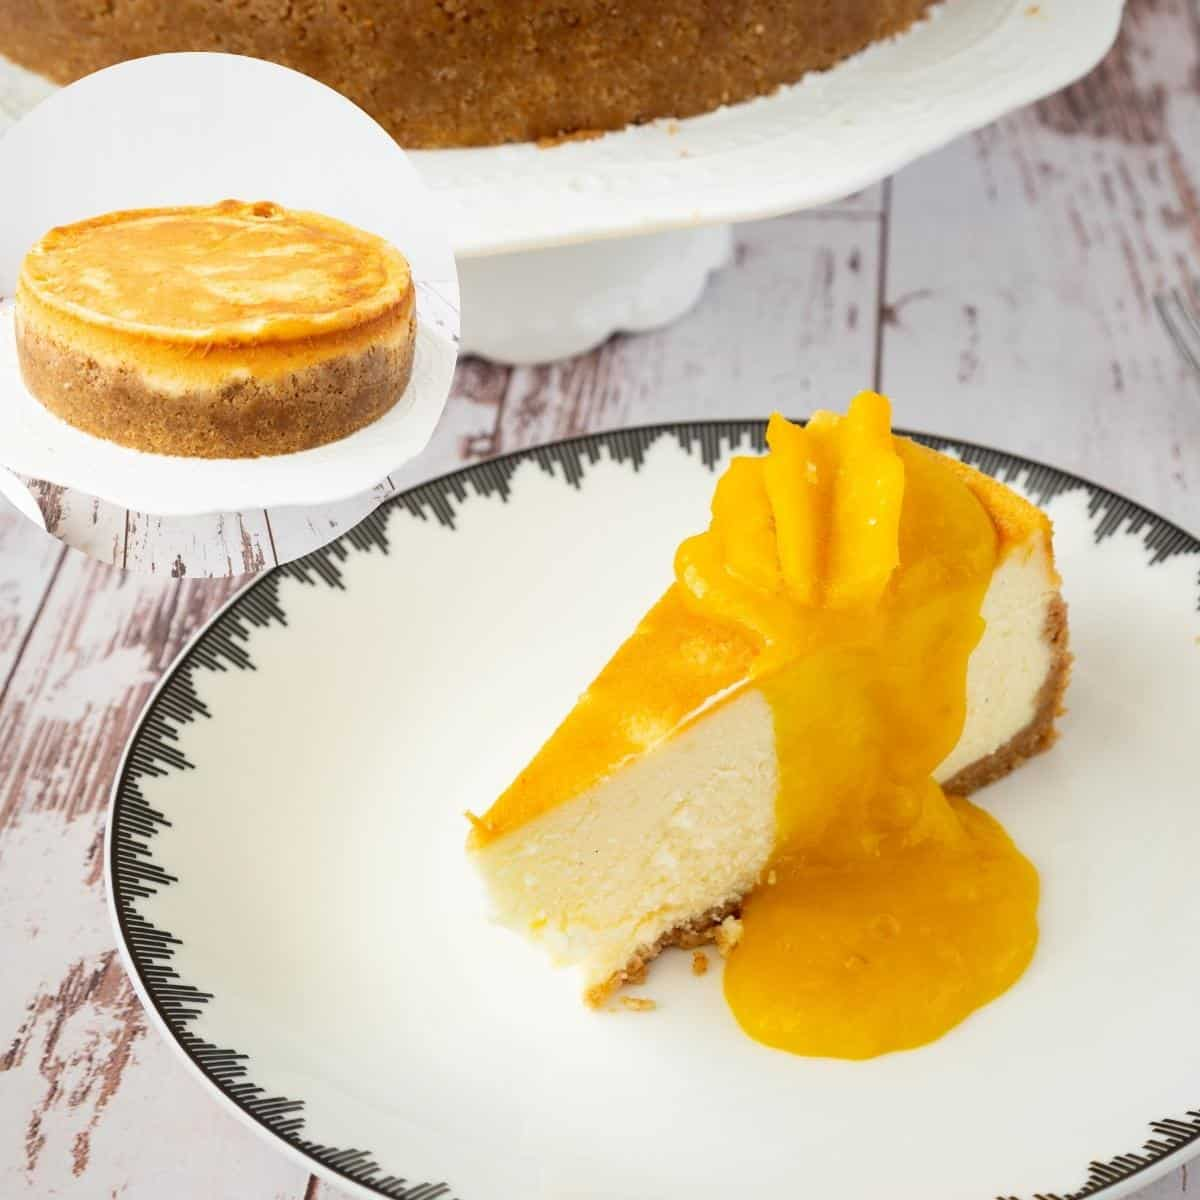 A sliced of cheesecake with mango filling.